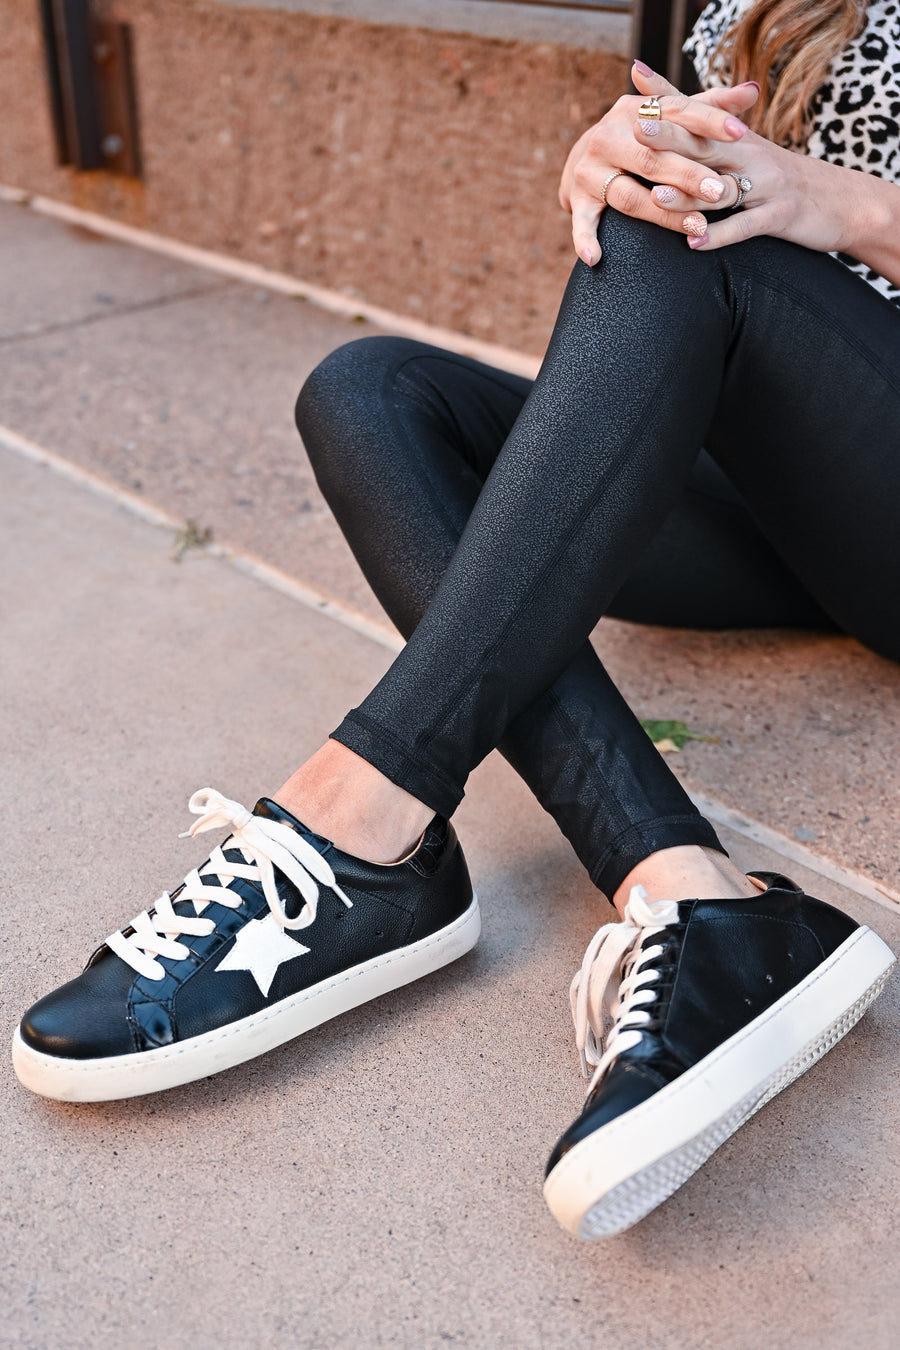 Super Star Sneakers - Black womens casual lace up sneakers white star design closet candy 2